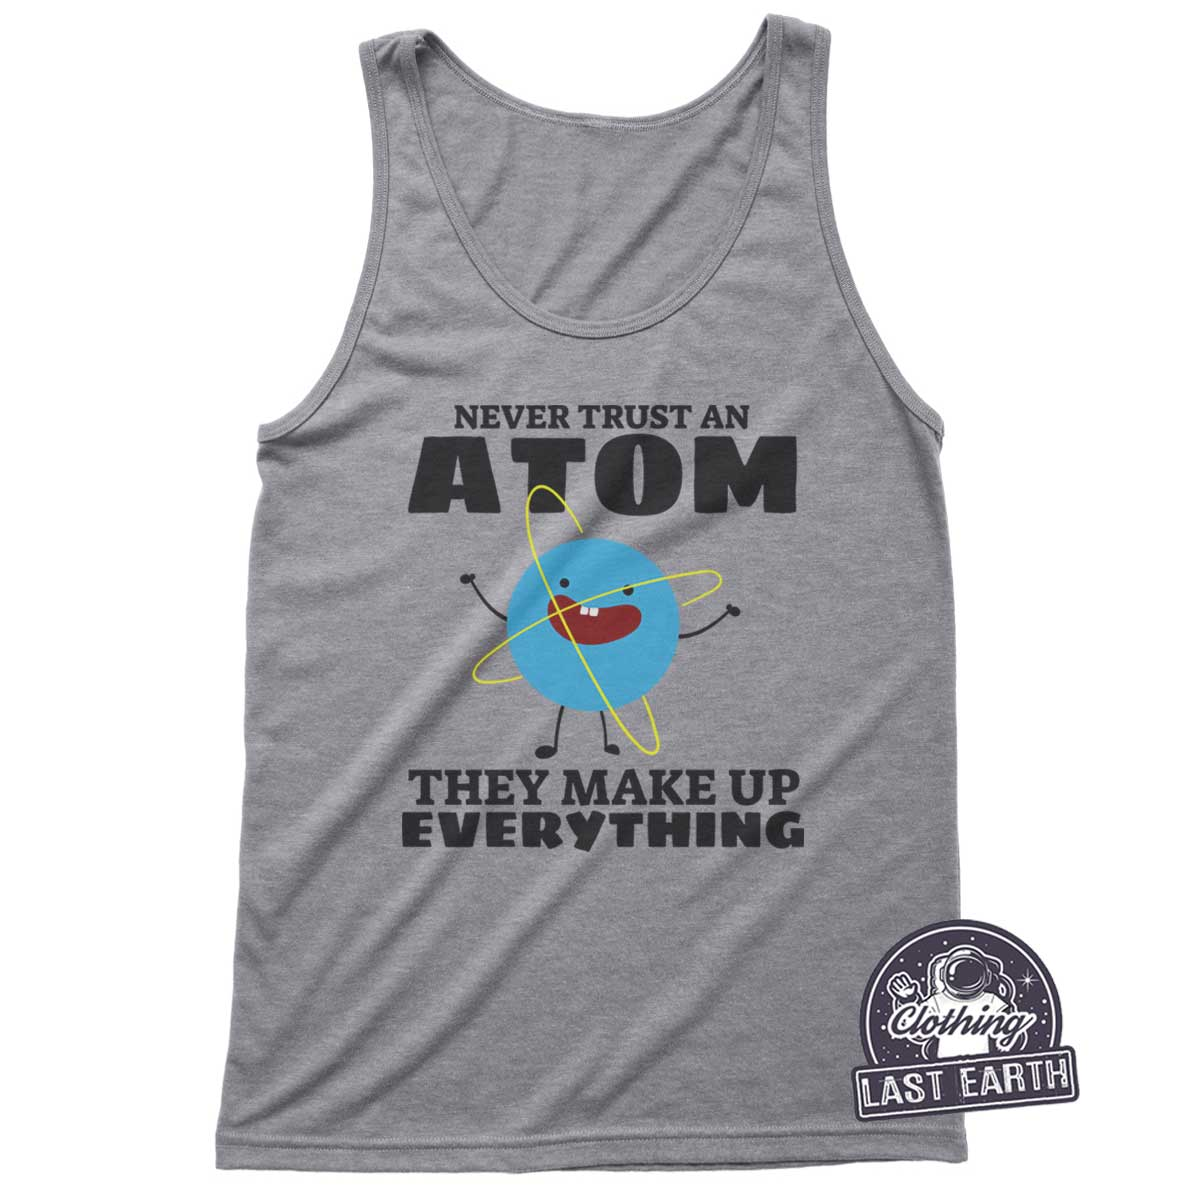 e2743a3f Never Trust An Atom T-Shirt | Funny Science Gifts | Last Earth ...